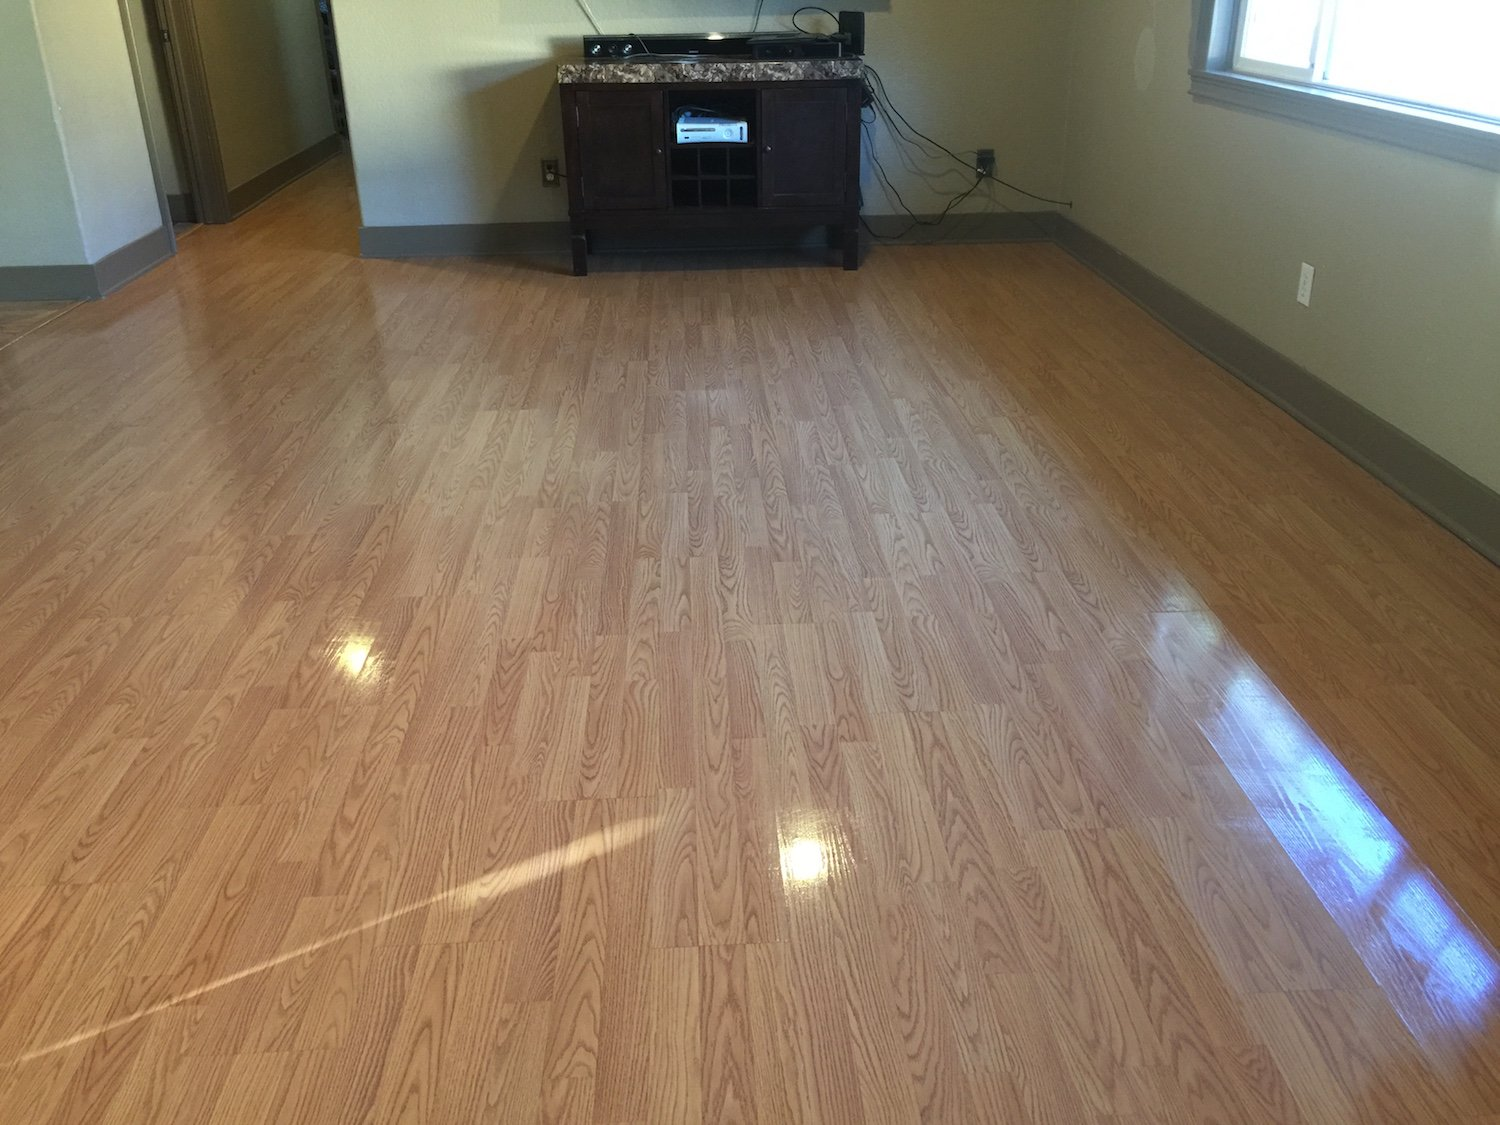 Hardwood floor cleaning sacramento hardwood cleaners for Hardwood floors dull after cleaning